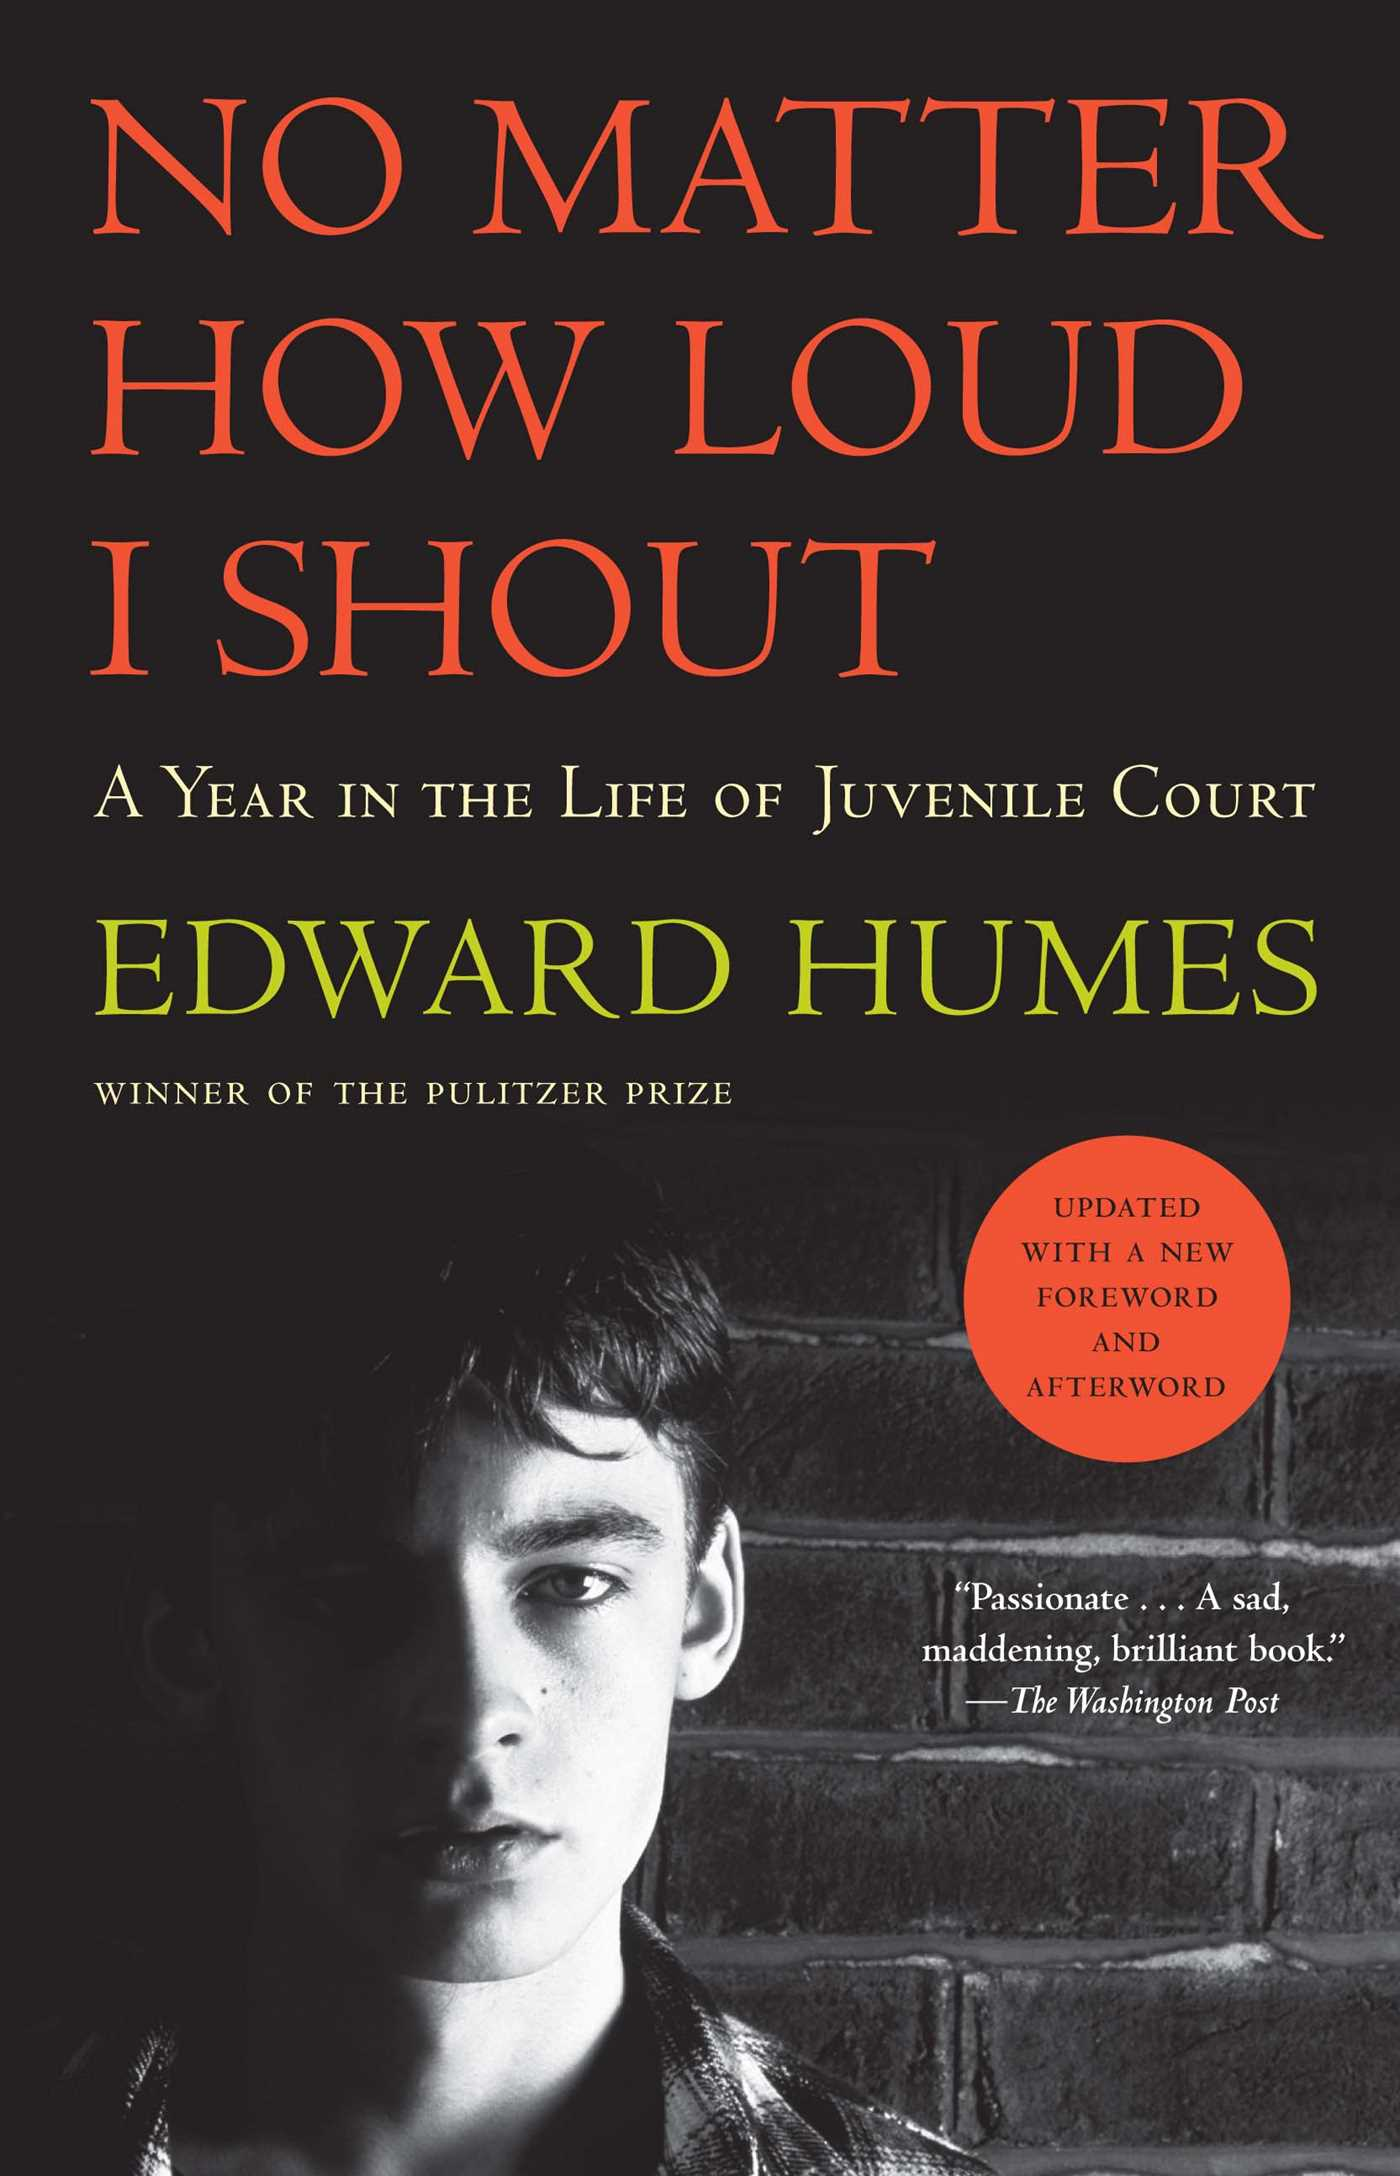 No Matter How Loud I Shout A Year In The Life Of Juvenile Court By Edward Humes